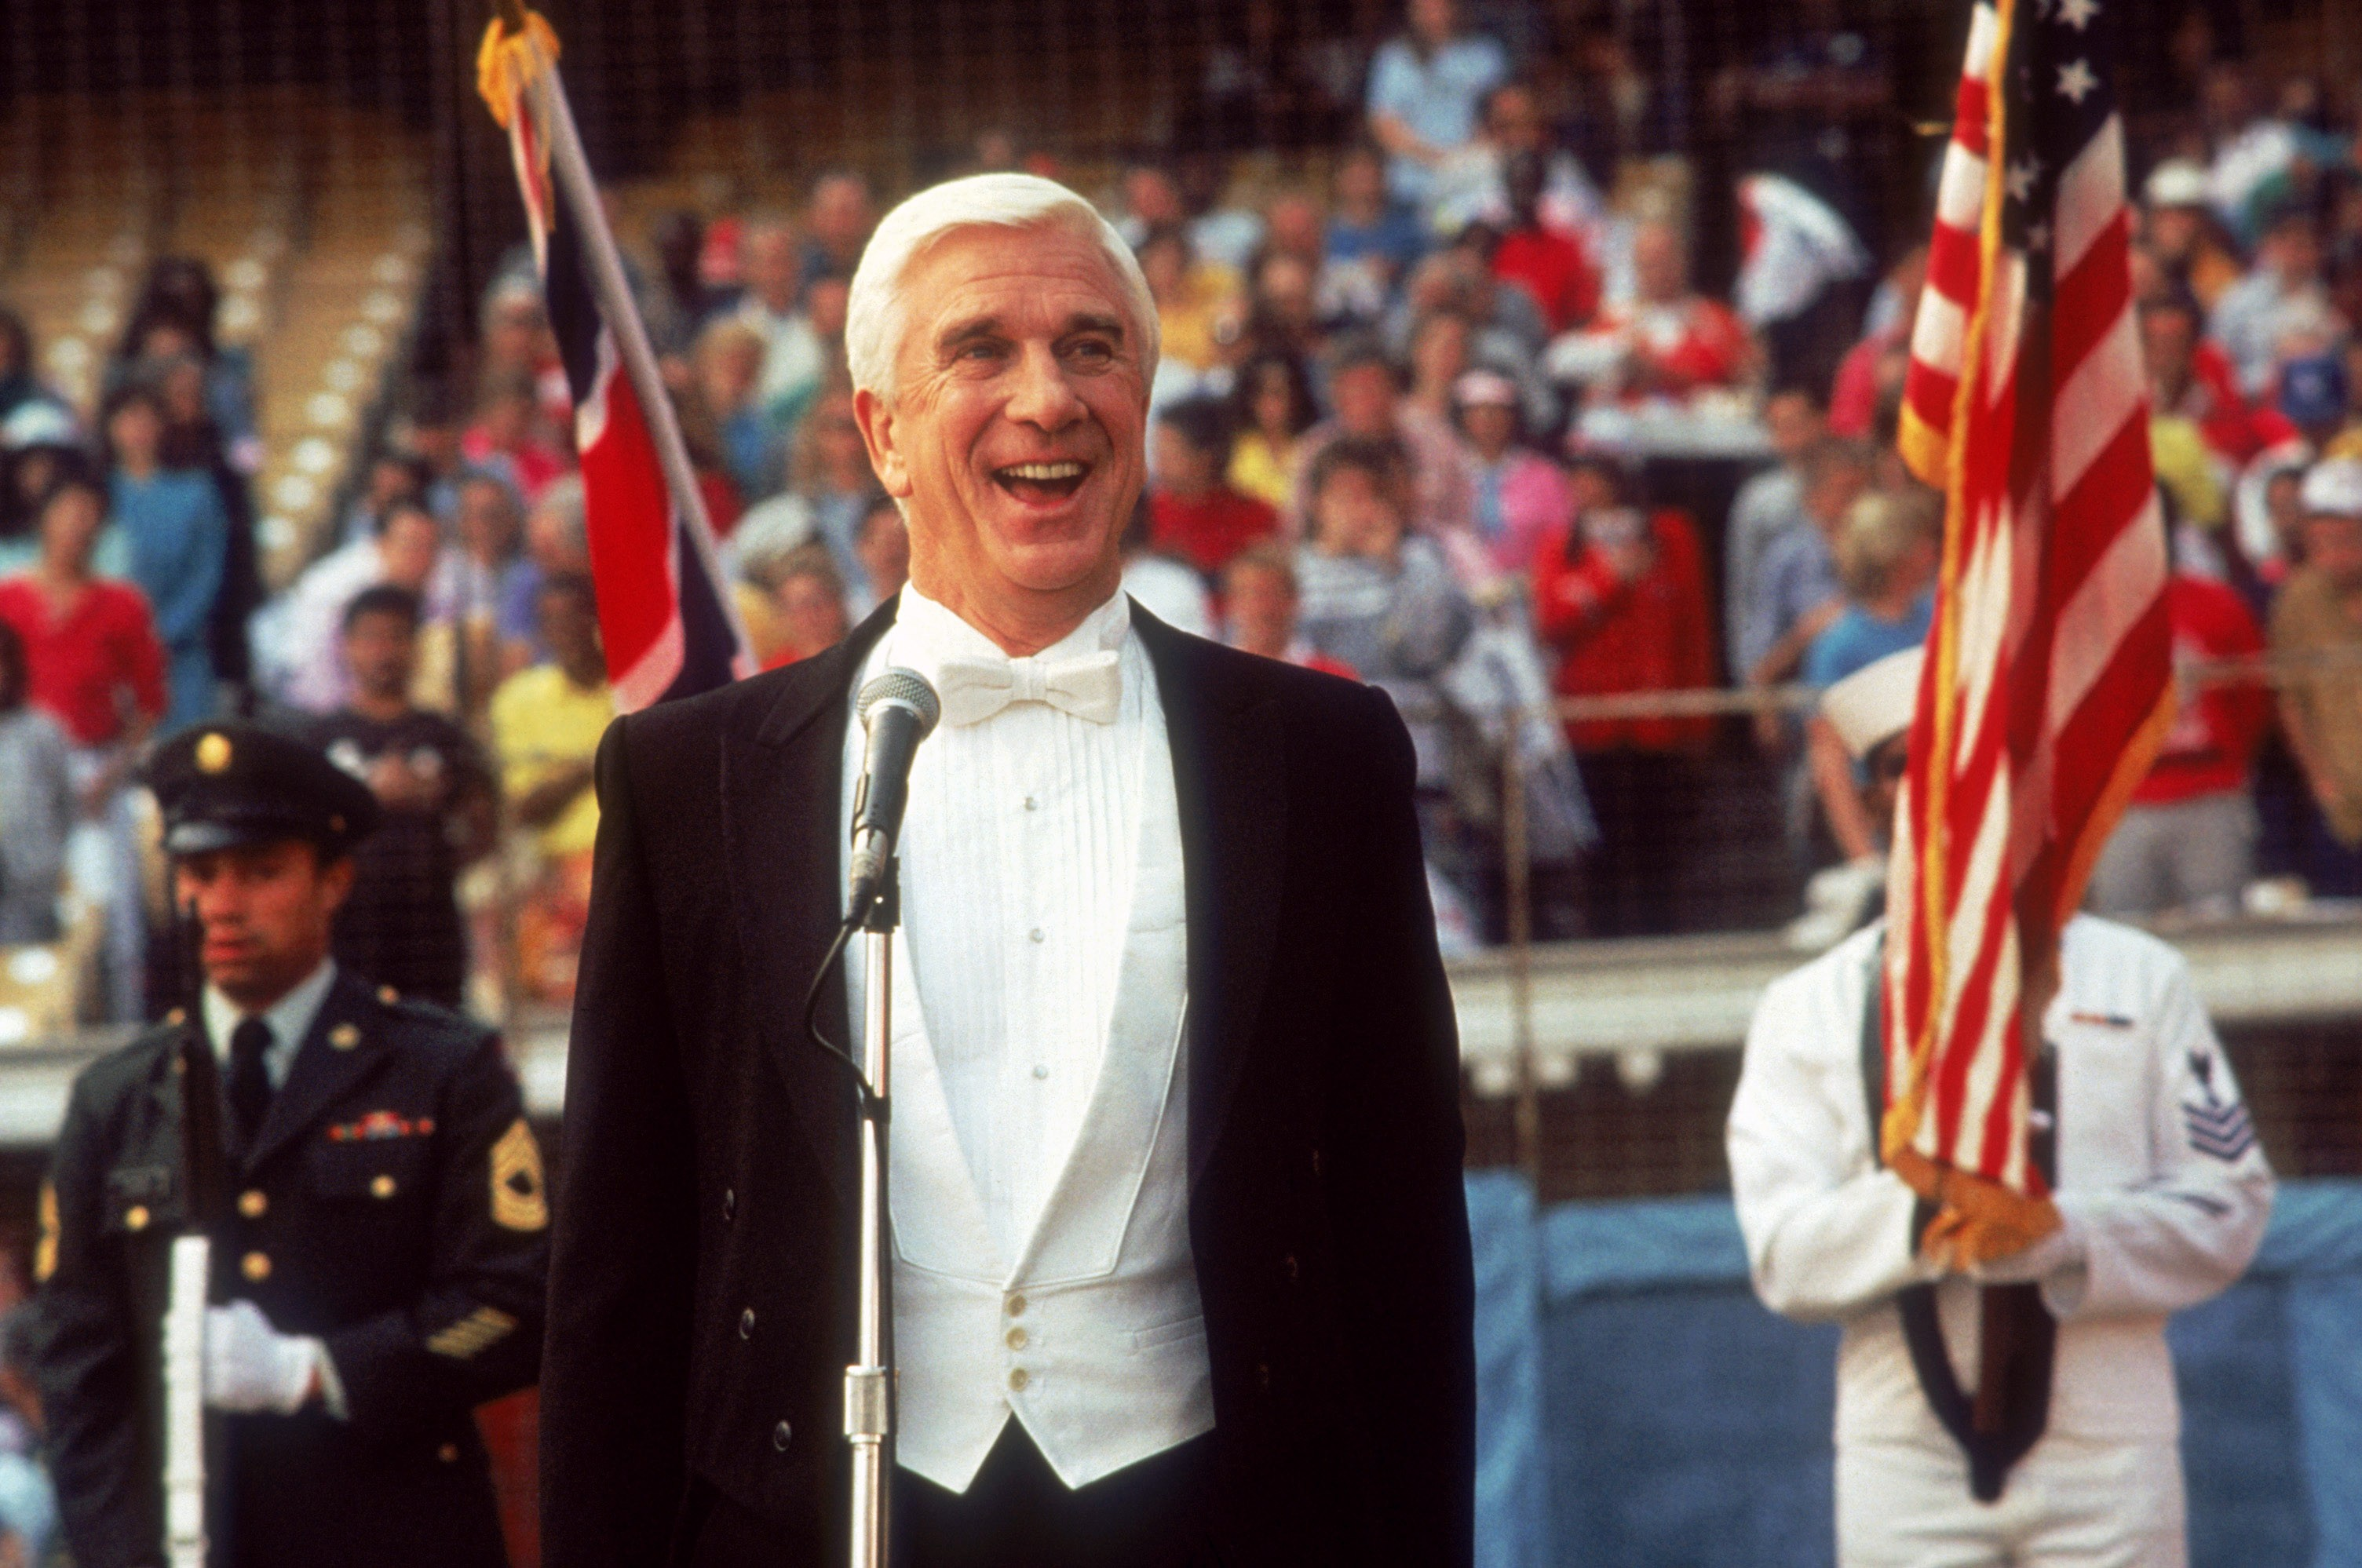 Naked Gun 2.5 and 33.3: Frank Drebin is on the Case